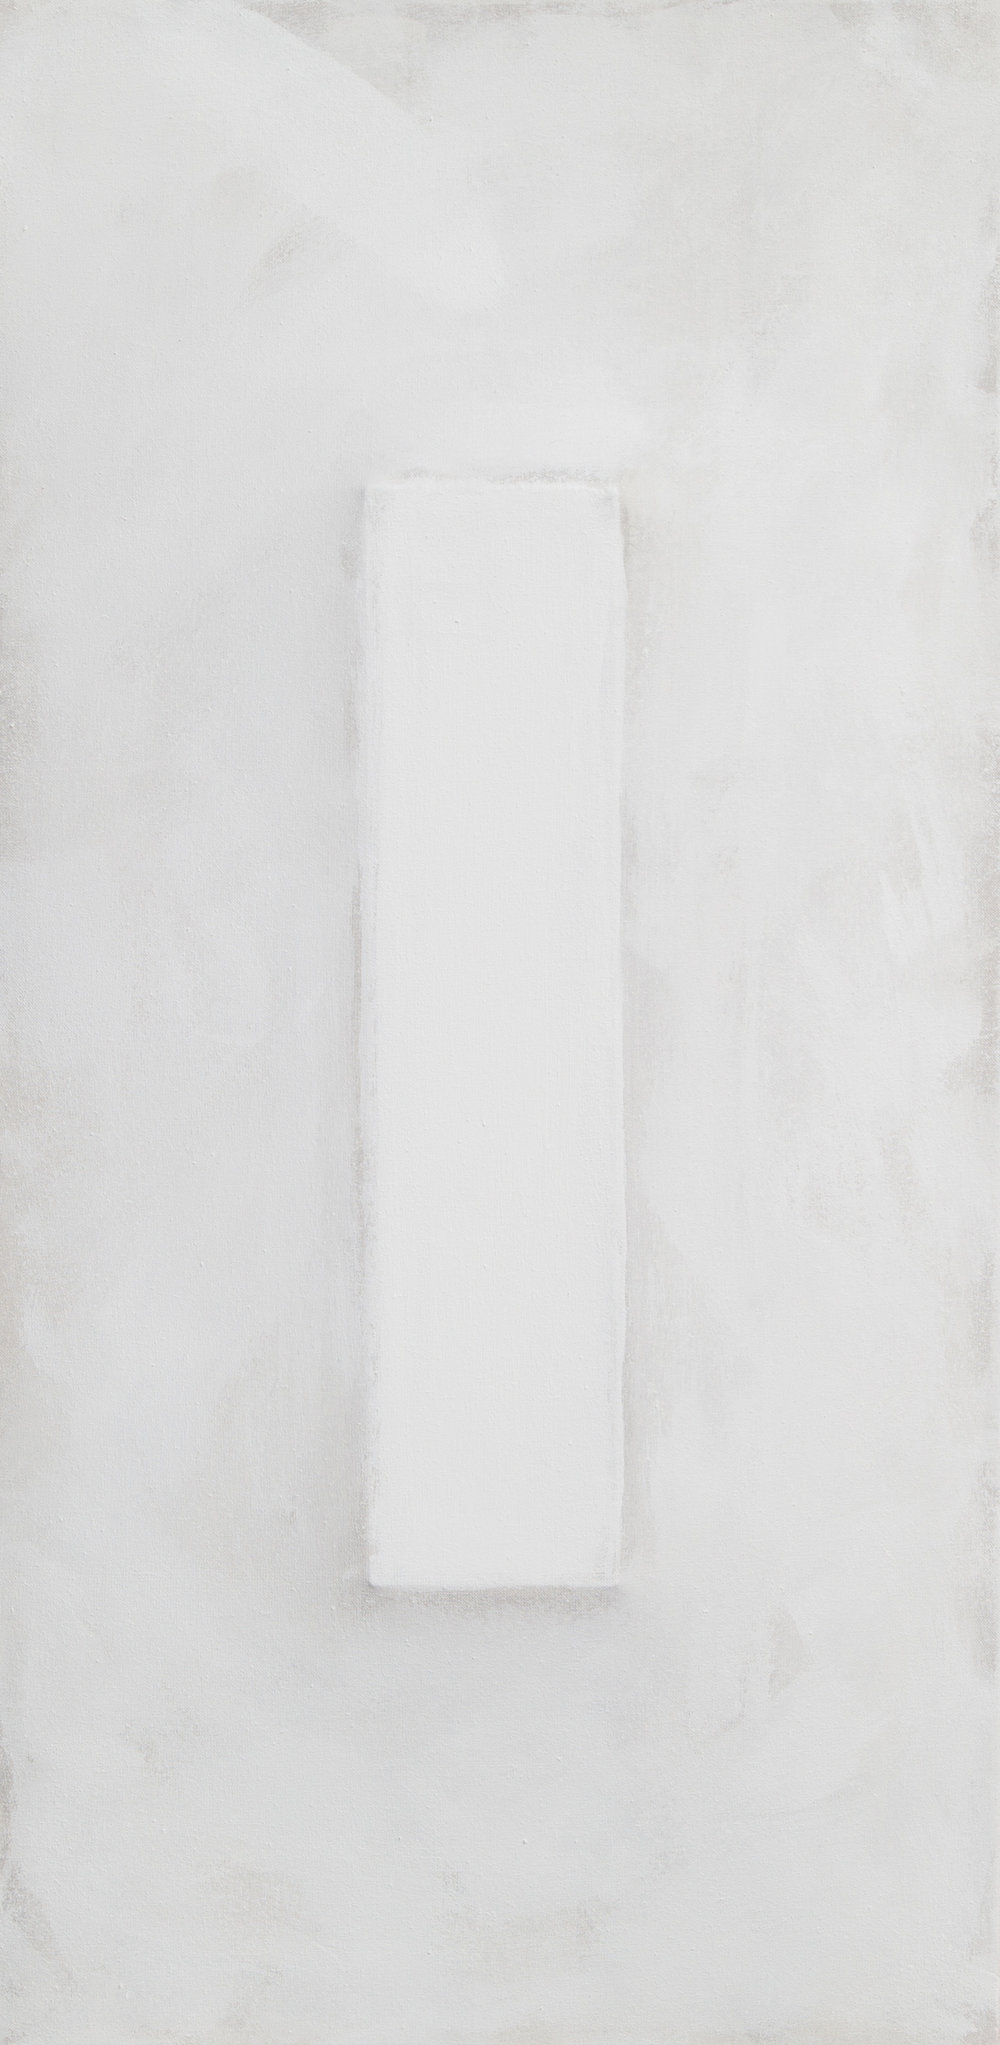 There's a Block in the Void (1723) , 2017, gesso on shaped canvas, 48 x 24 x 3 in.*